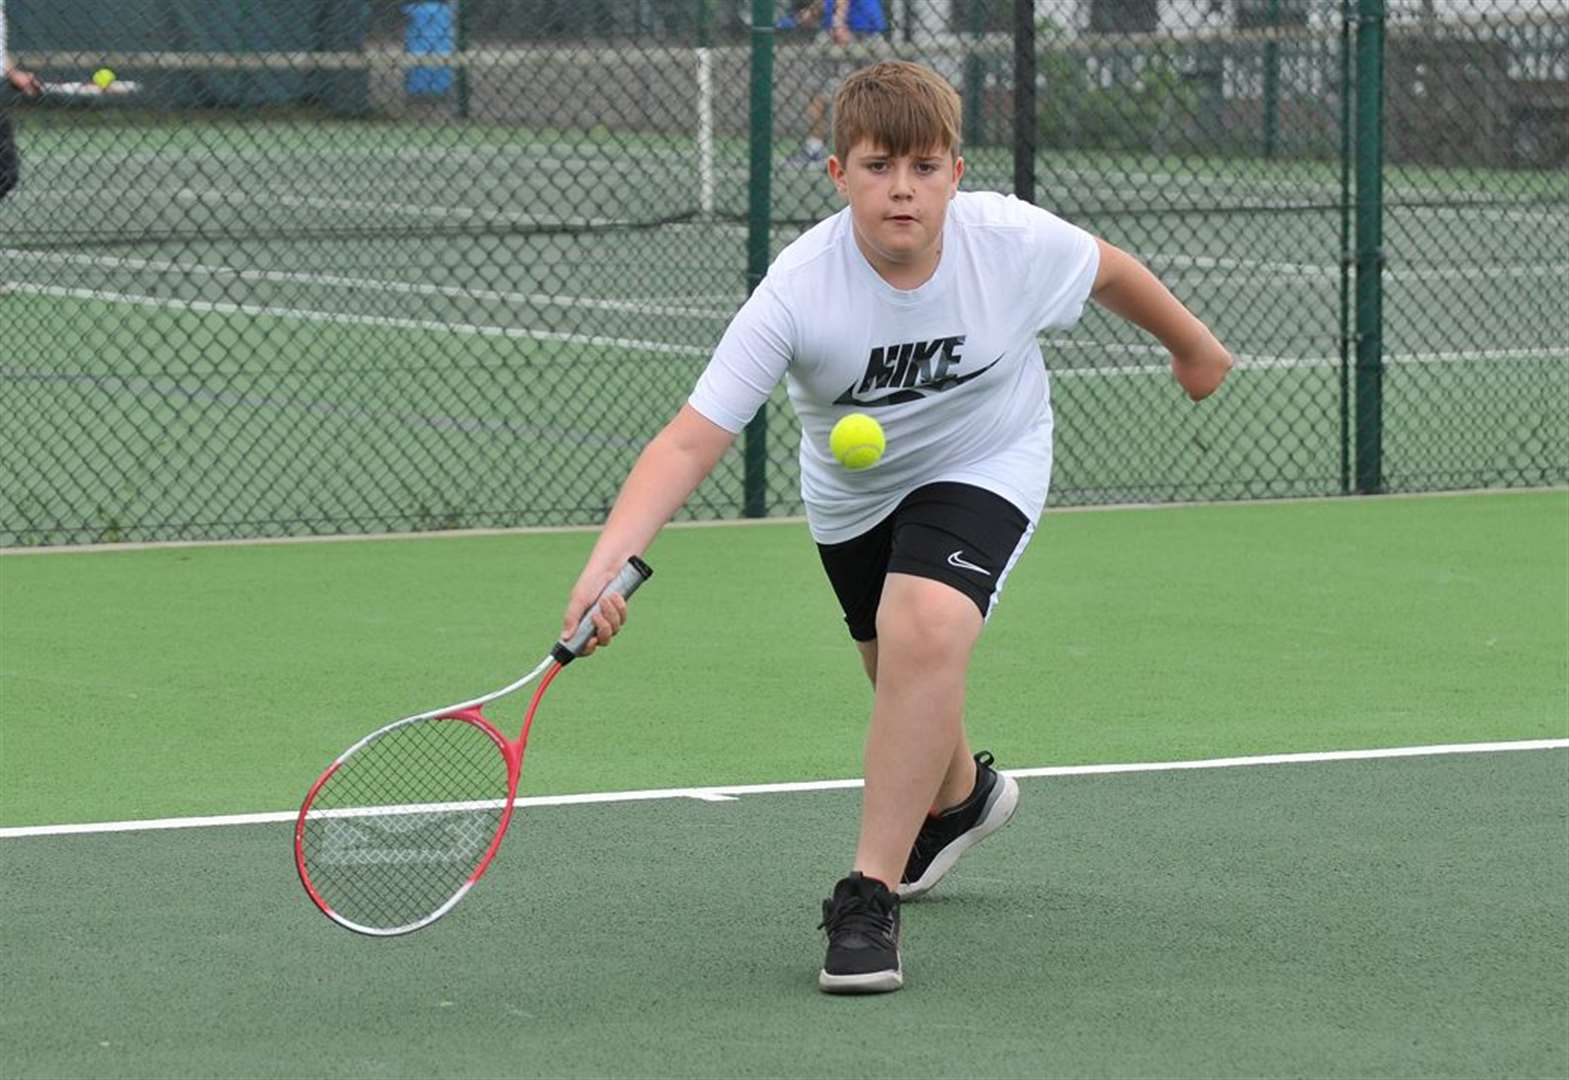 Tennis club holds open day